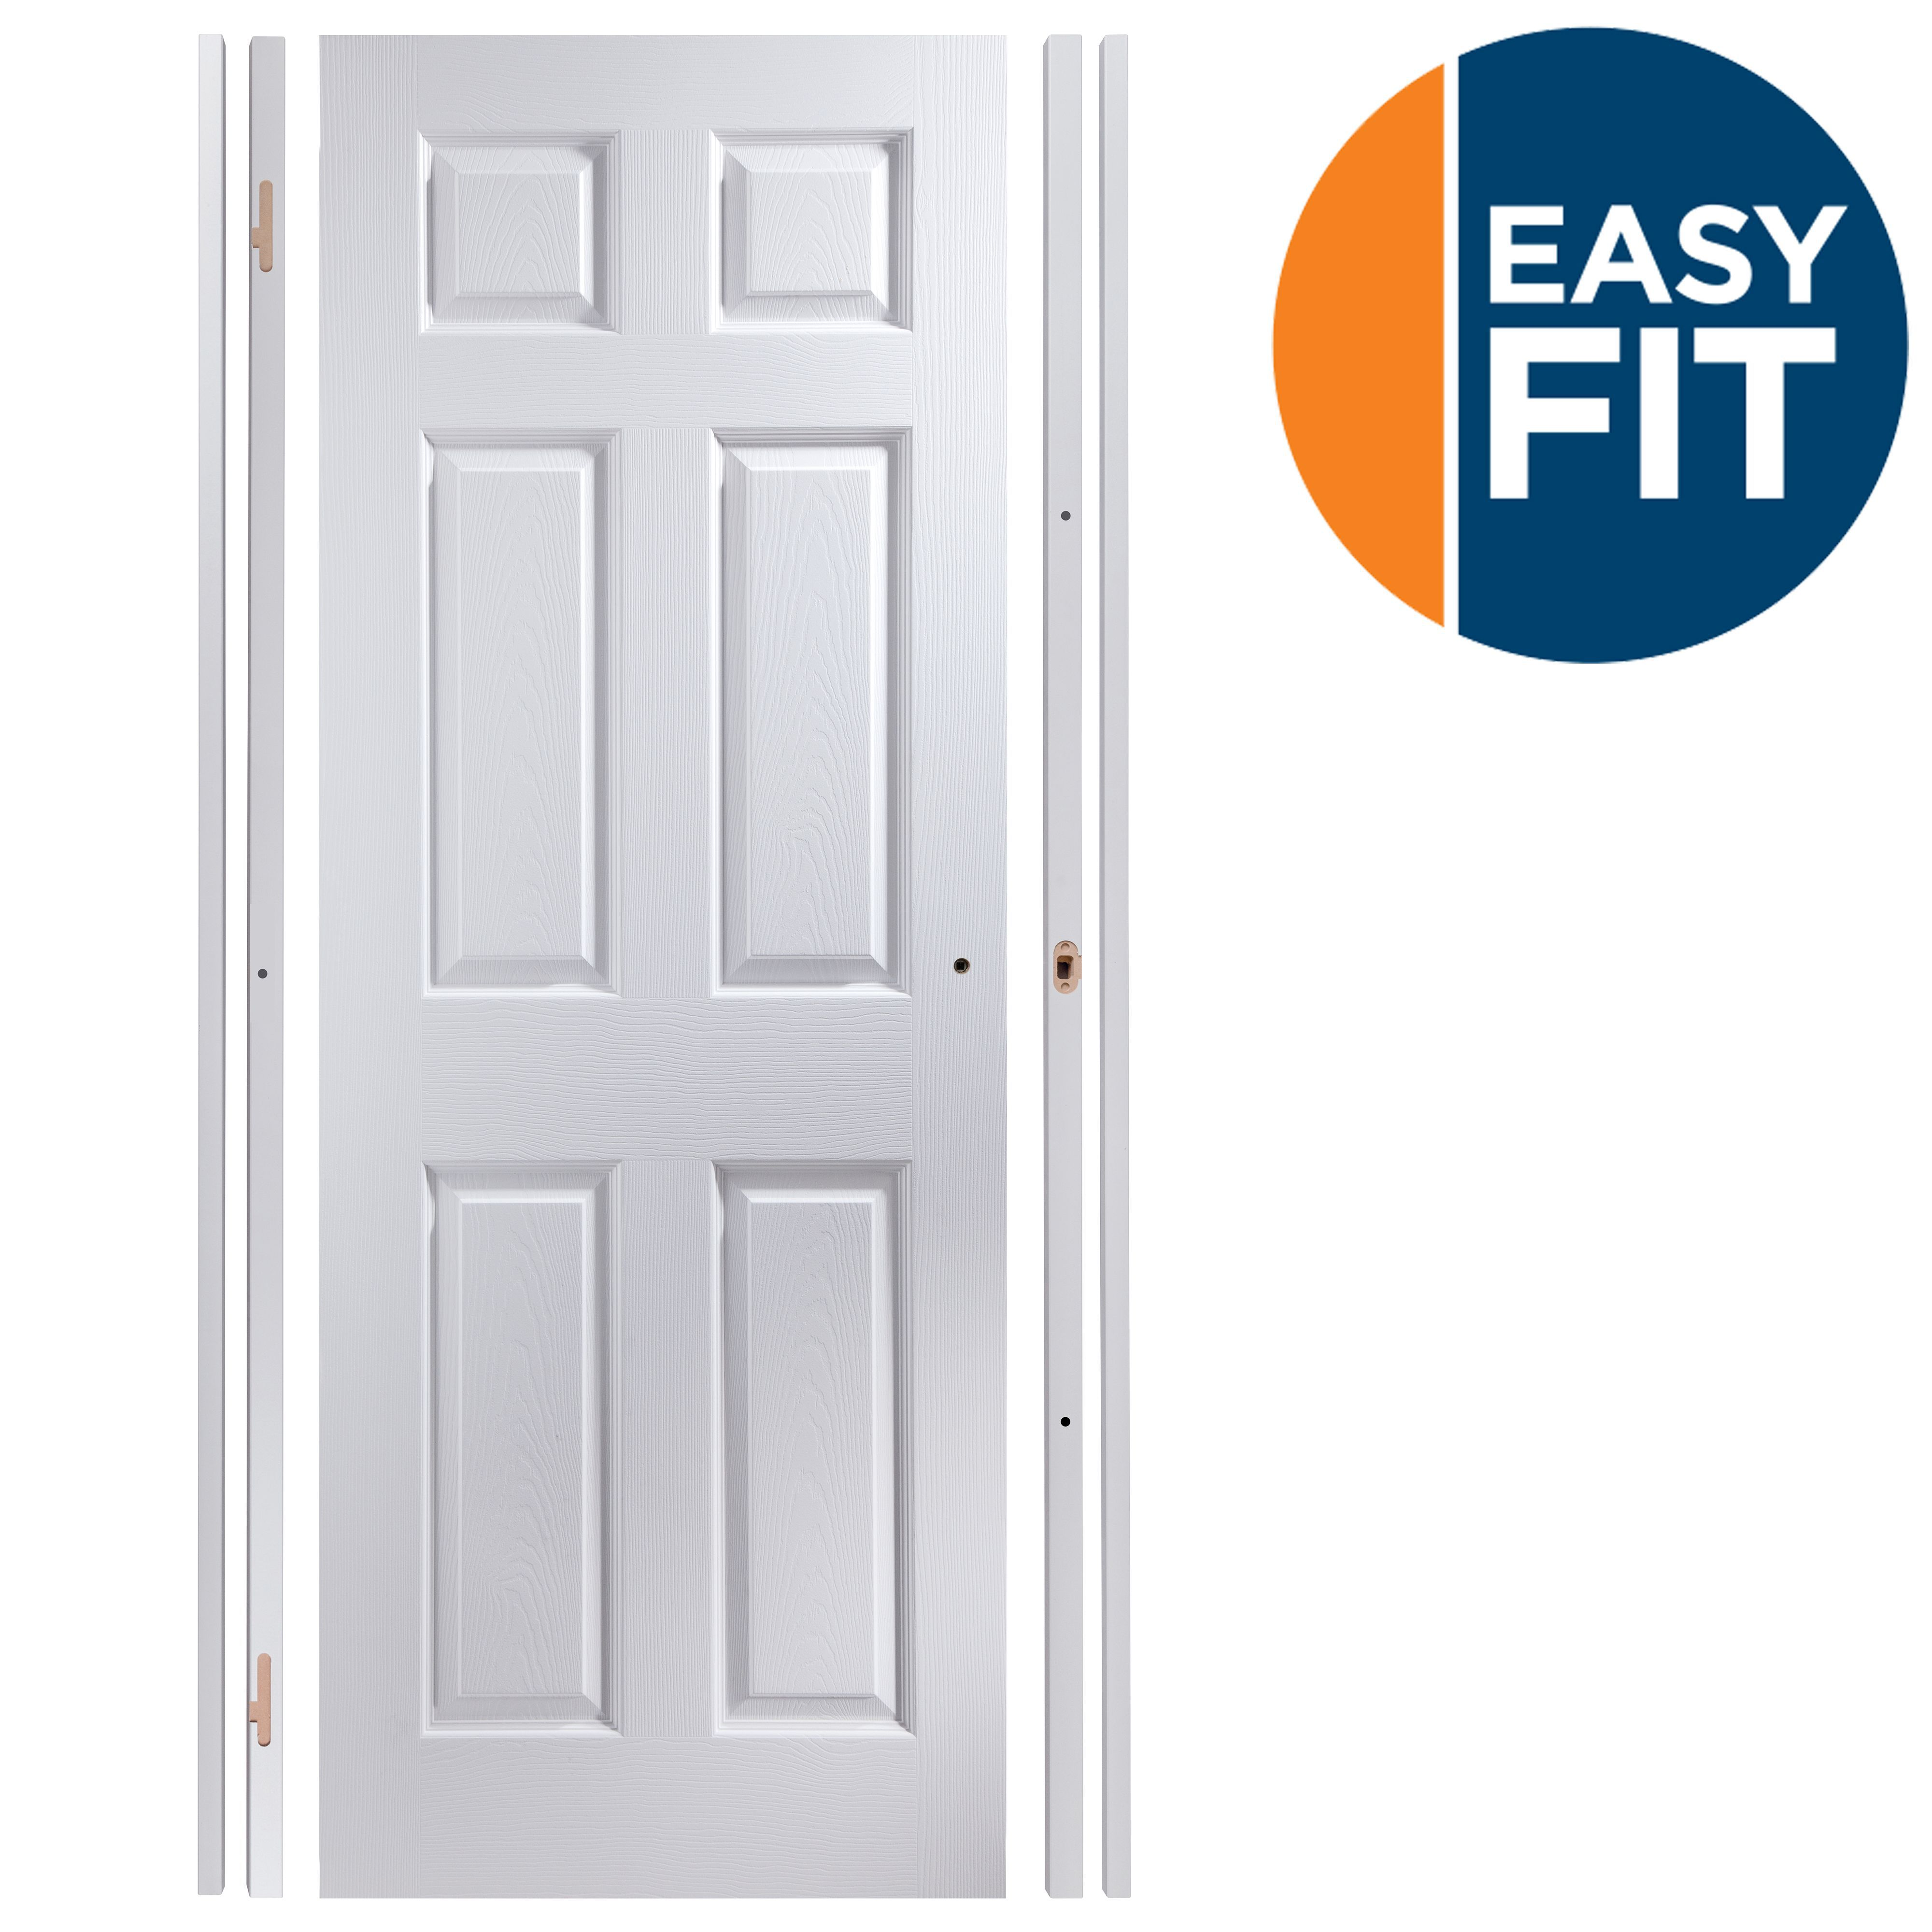 6 panel pre painted white unglazed internal door kit for - Pre painted white interior doors ...